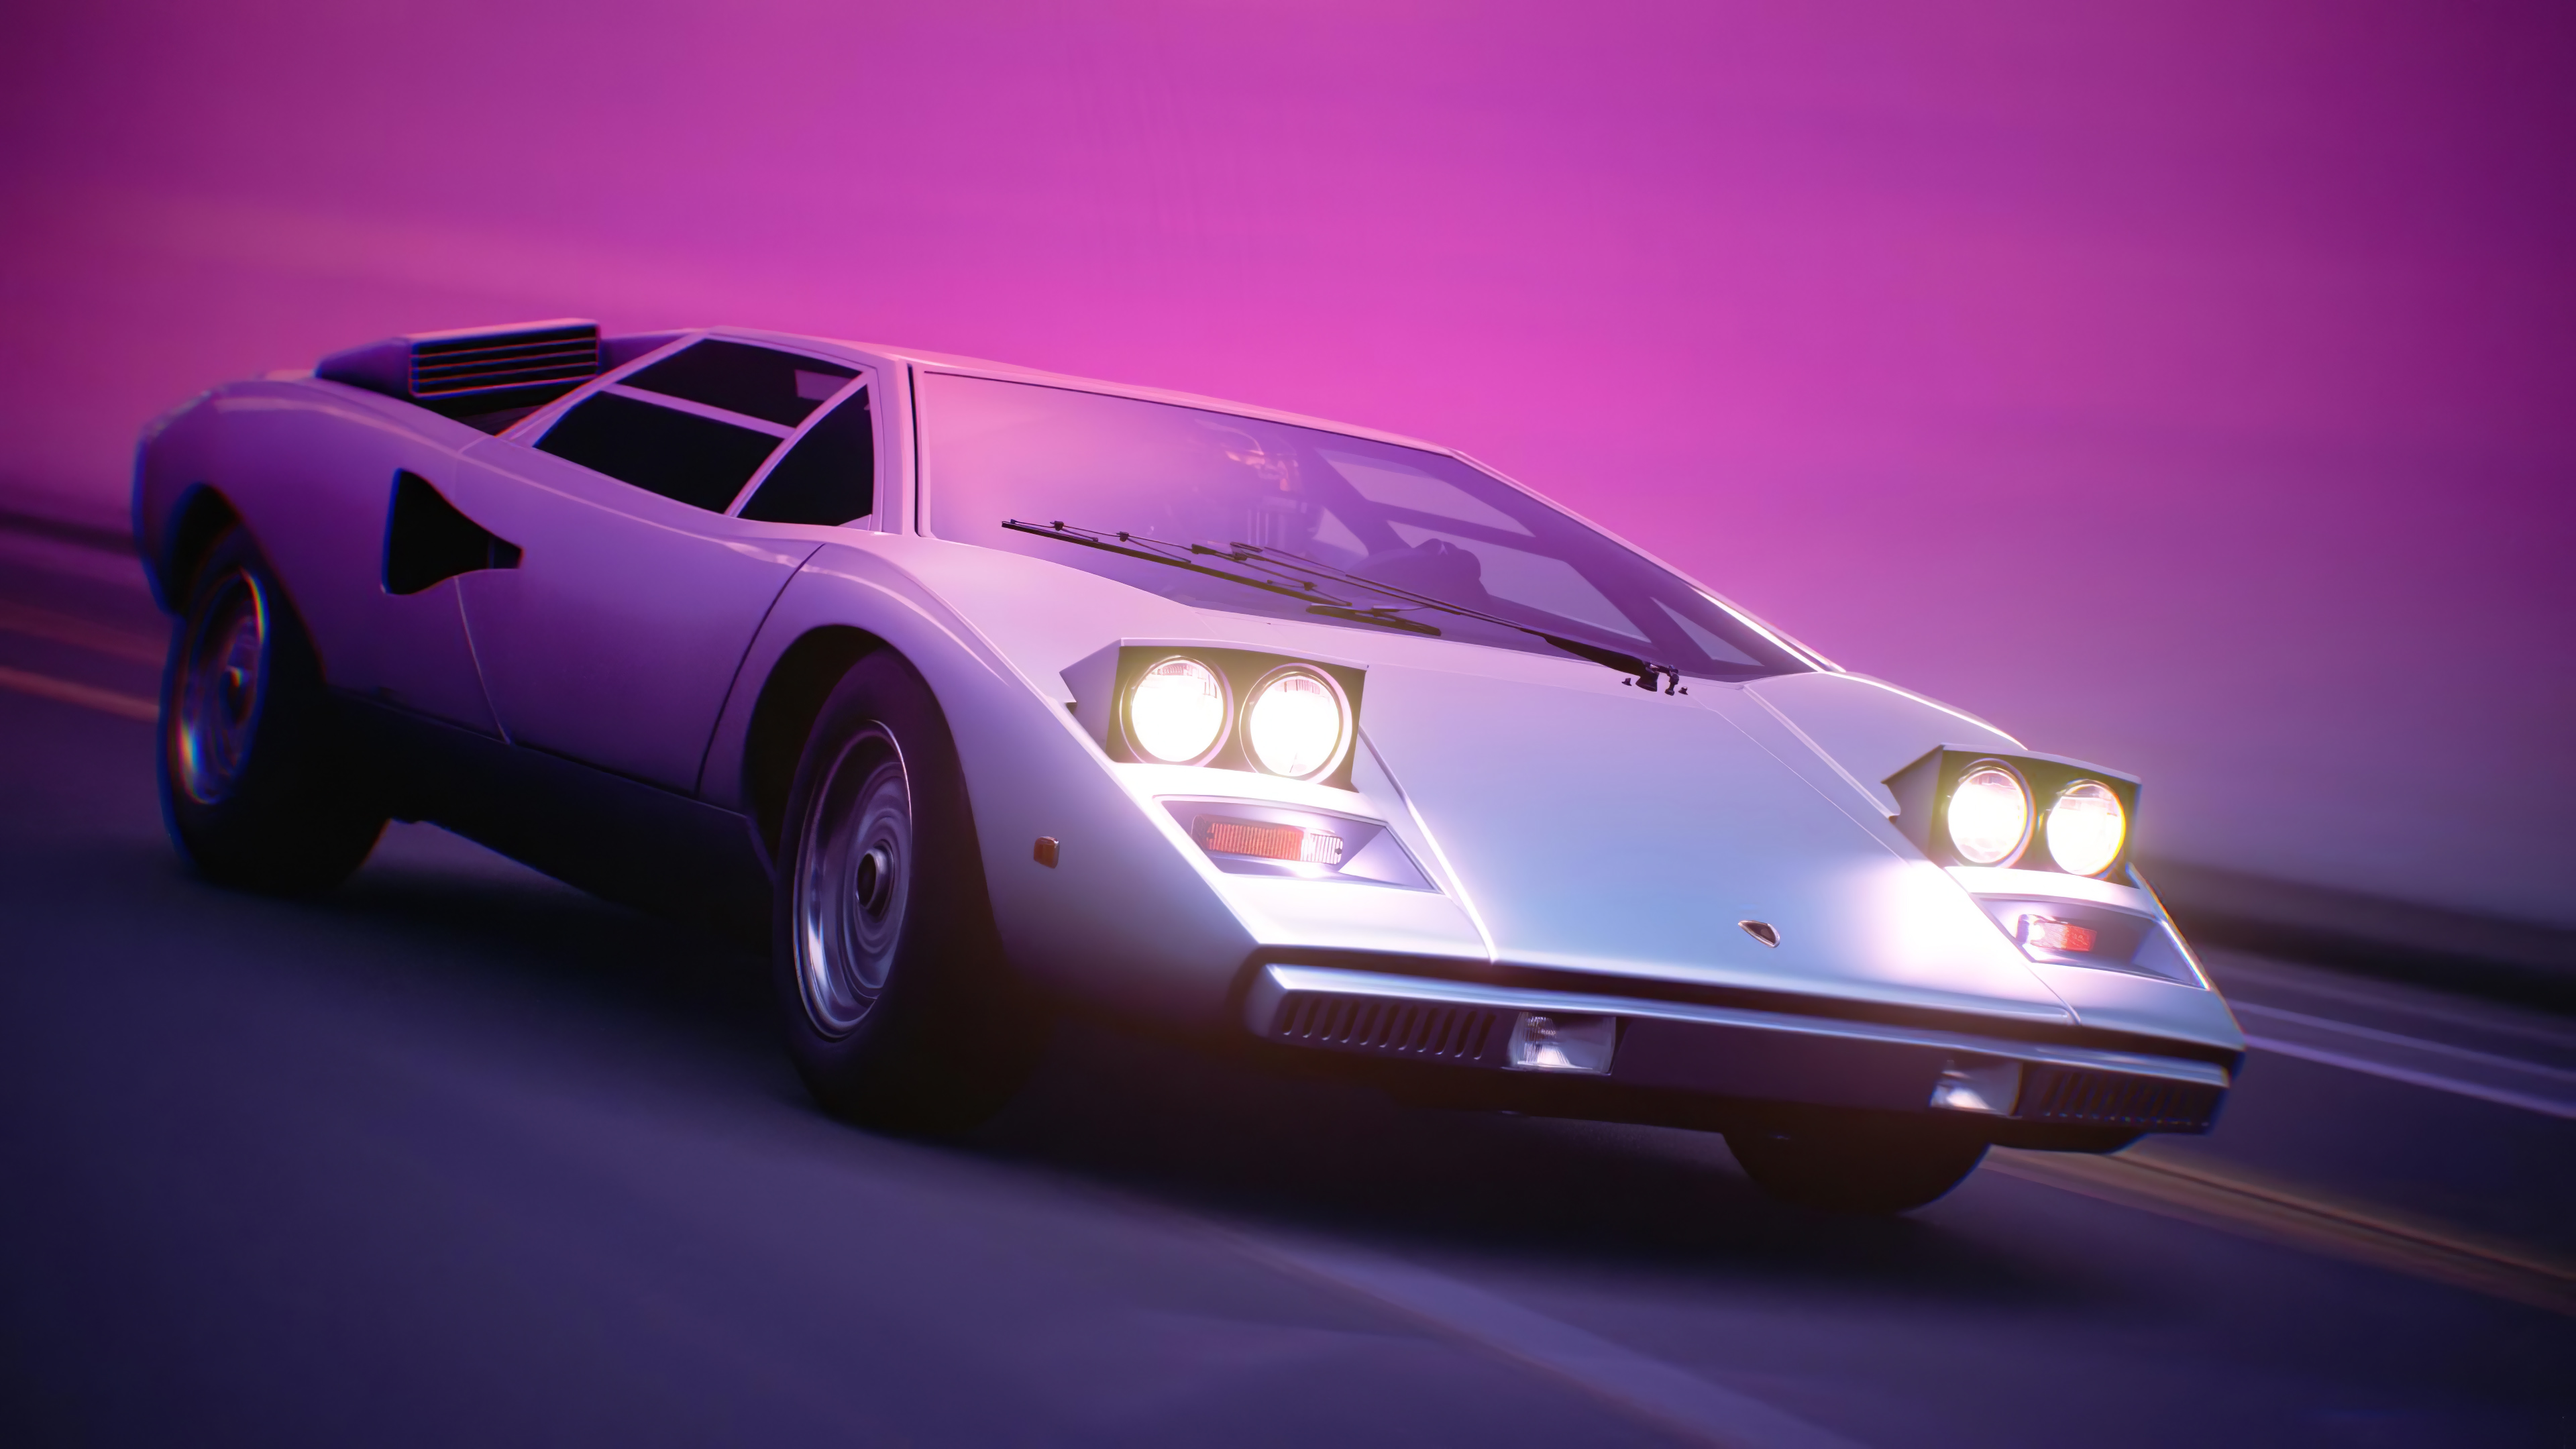 Outrun Car 4k HD Cars 4k Wallpapers Backgrounds